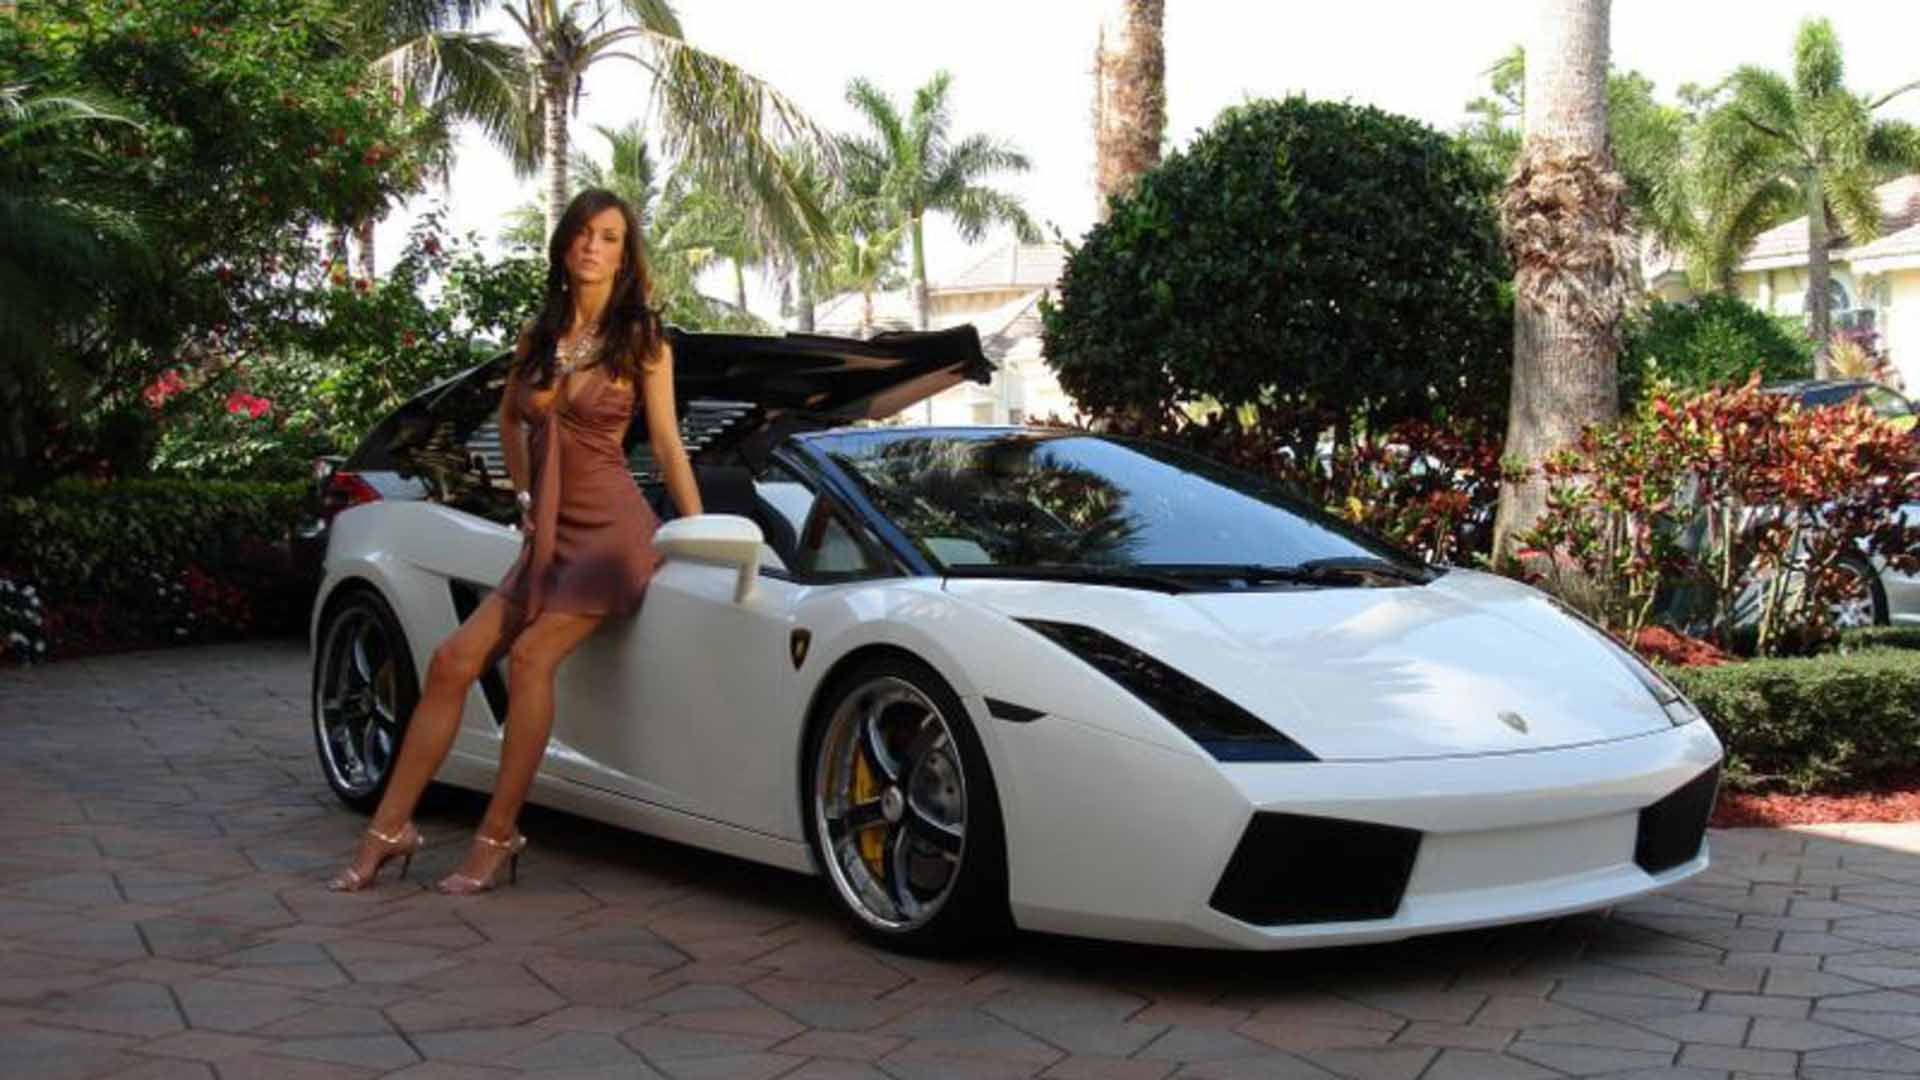 Sport Car Wallpaper With Girl: Car Girl Wallpapers